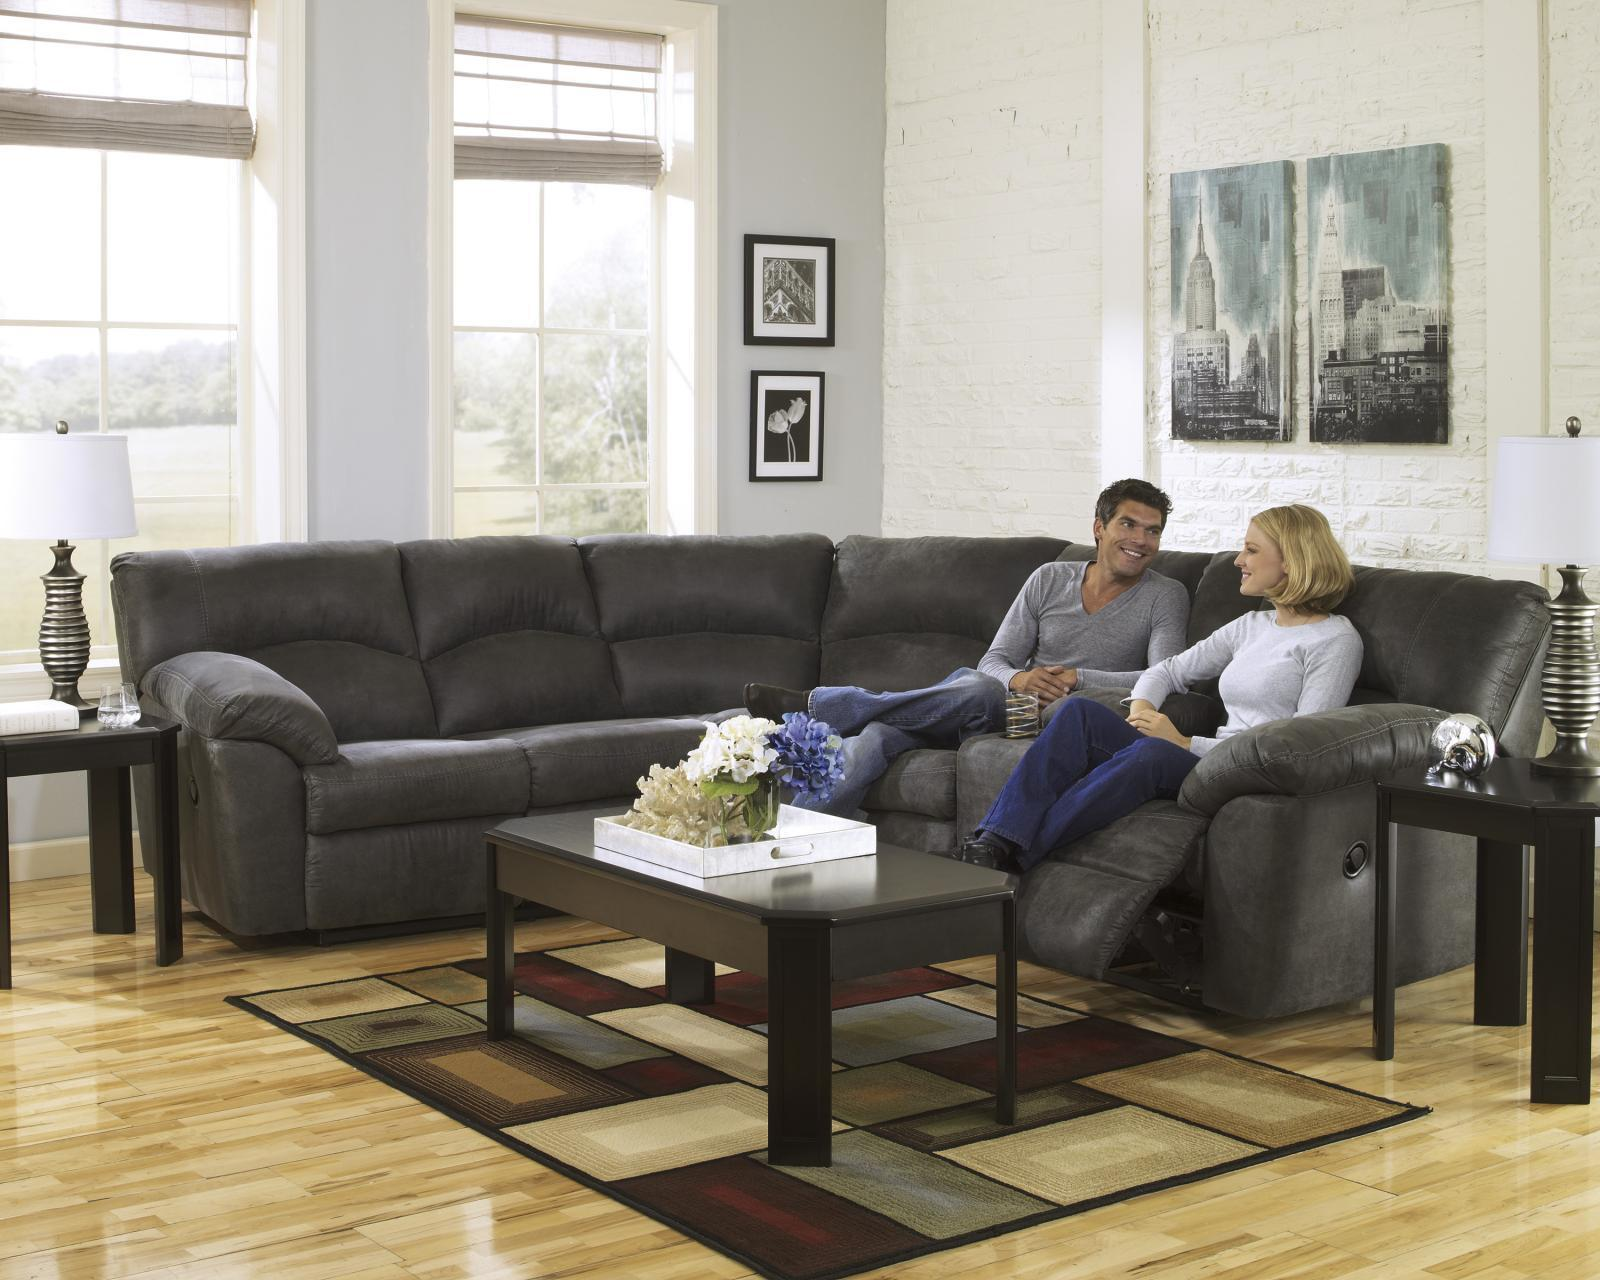 Ashley Tambo 2 Piece Living Room Sectional in Pewter Contemporary Style